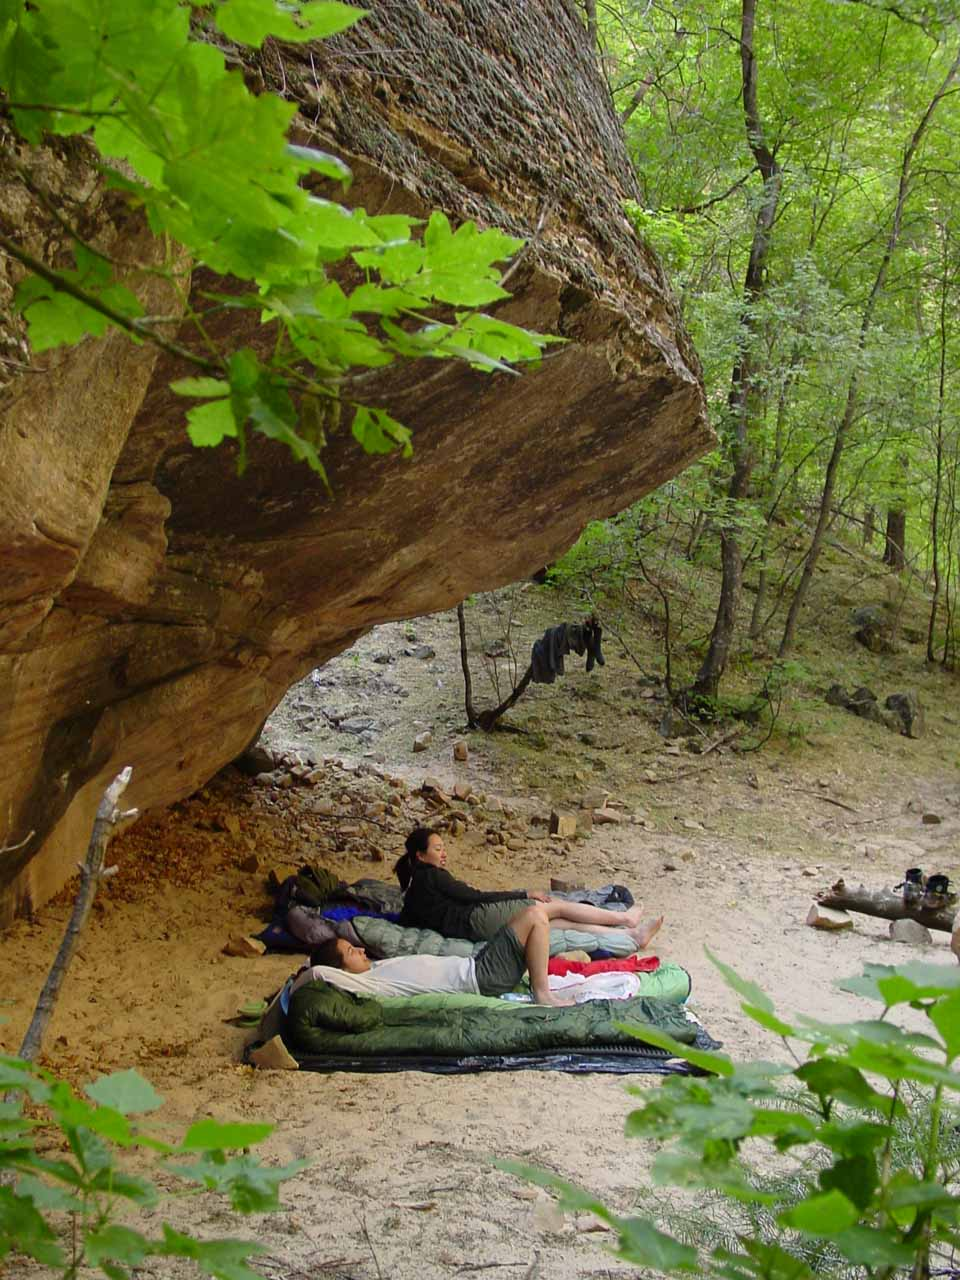 We spent a relatively comfortable tentless night within the Narrows